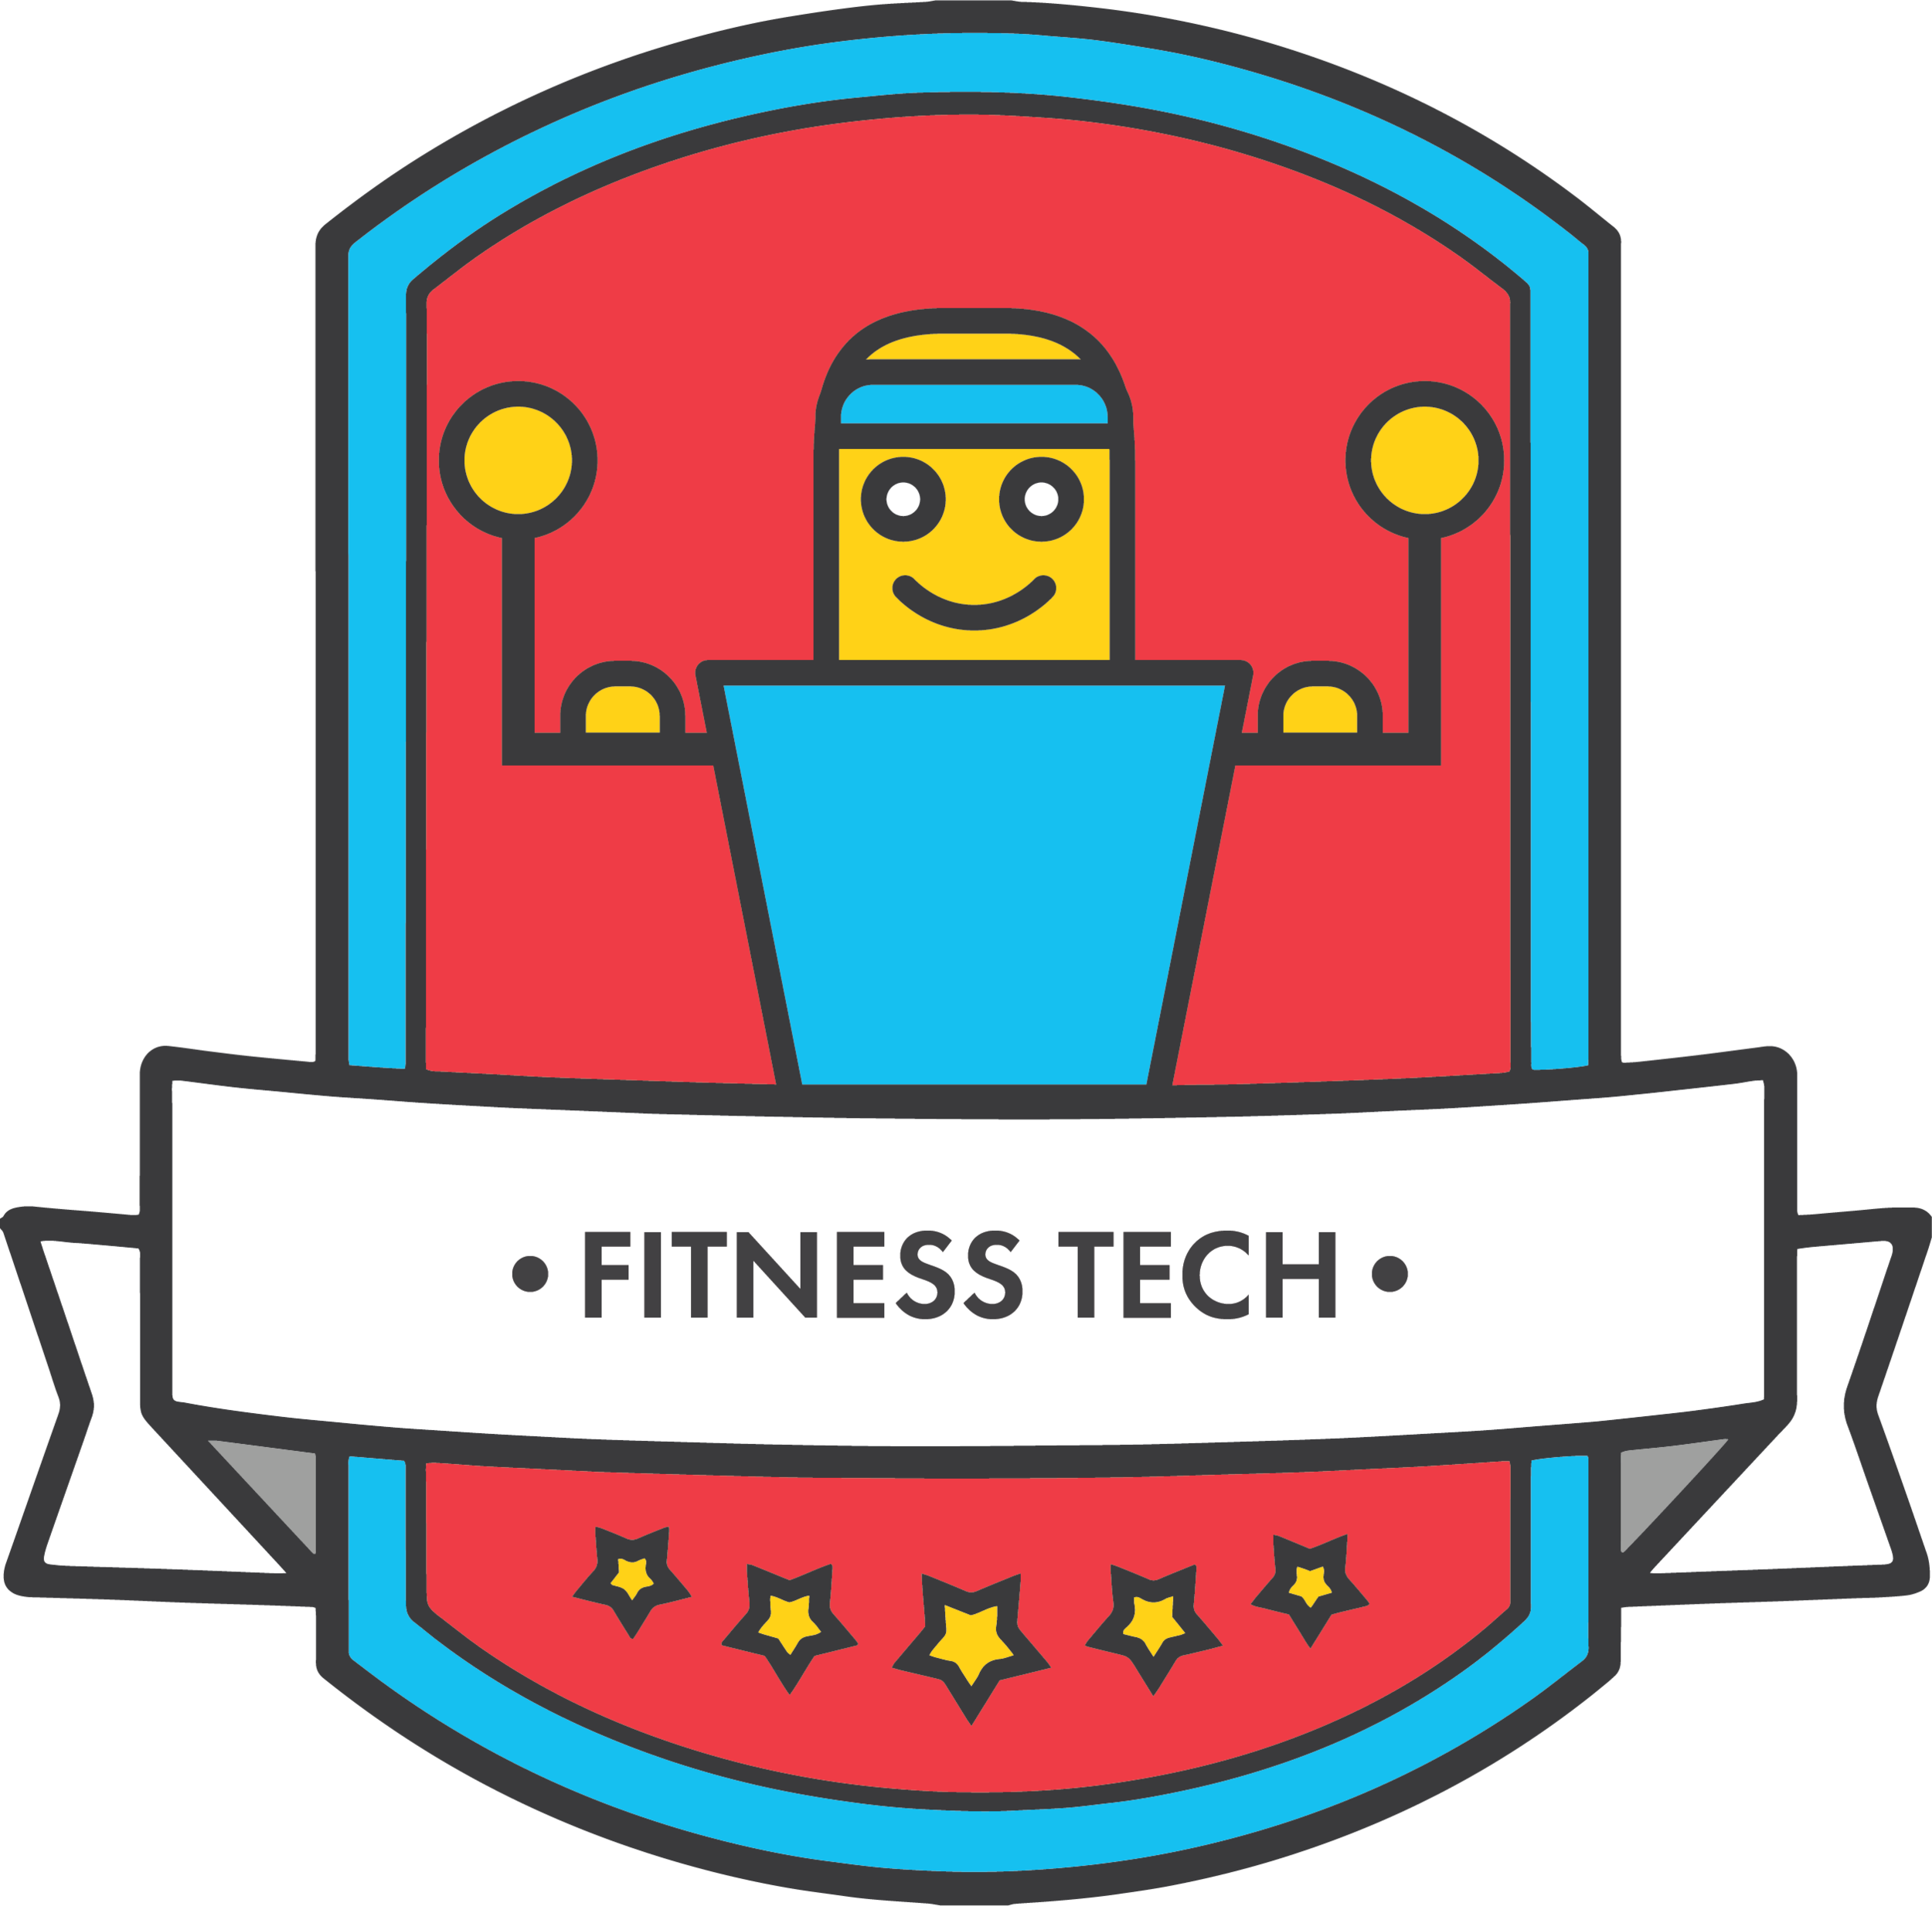 fitness-tech.png